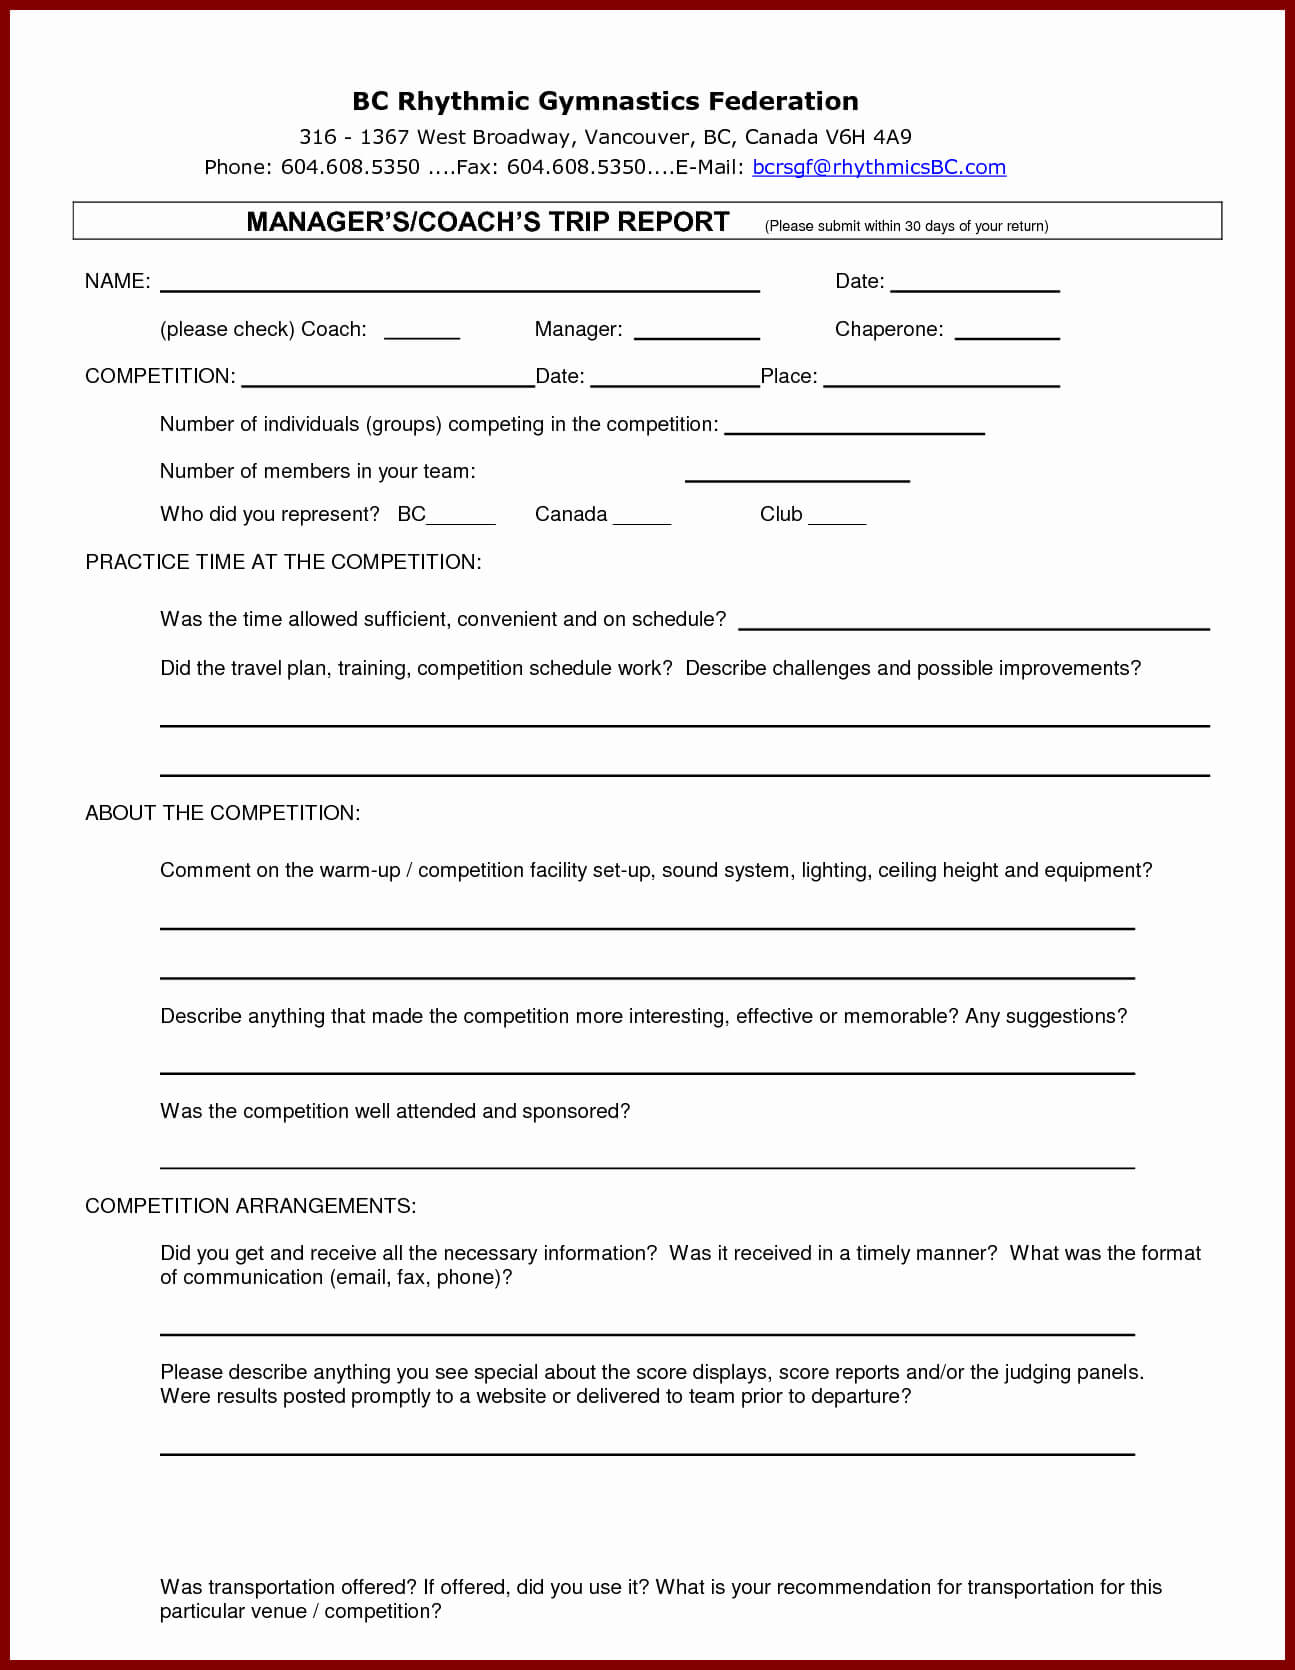 Customer Visit Report Template Free Download Throughout Customer Visit Report Template Free Download